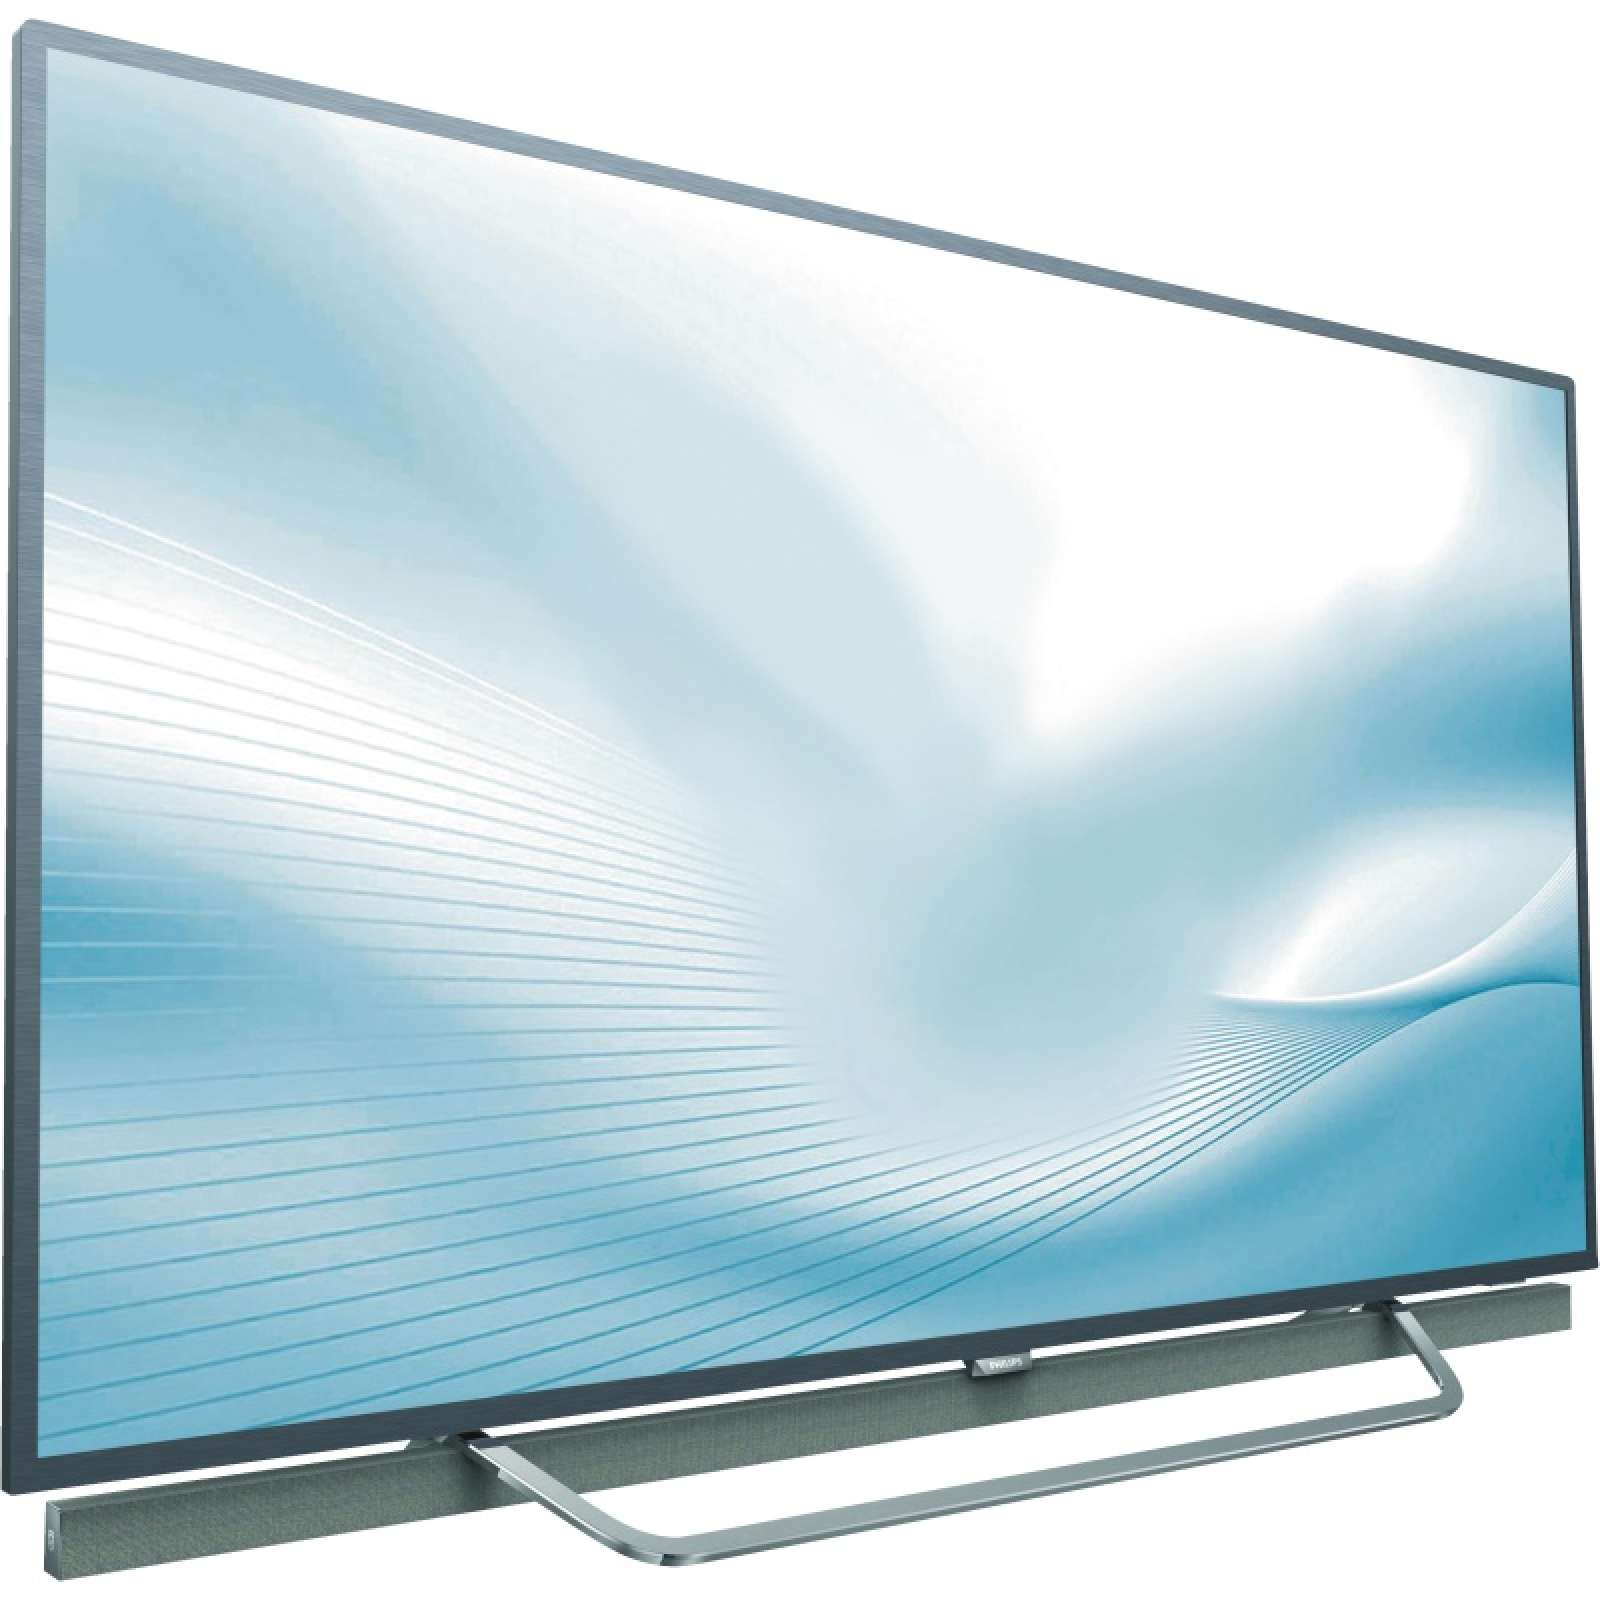 65 zoll philips tv led fernseher elektro risch. Black Bedroom Furniture Sets. Home Design Ideas